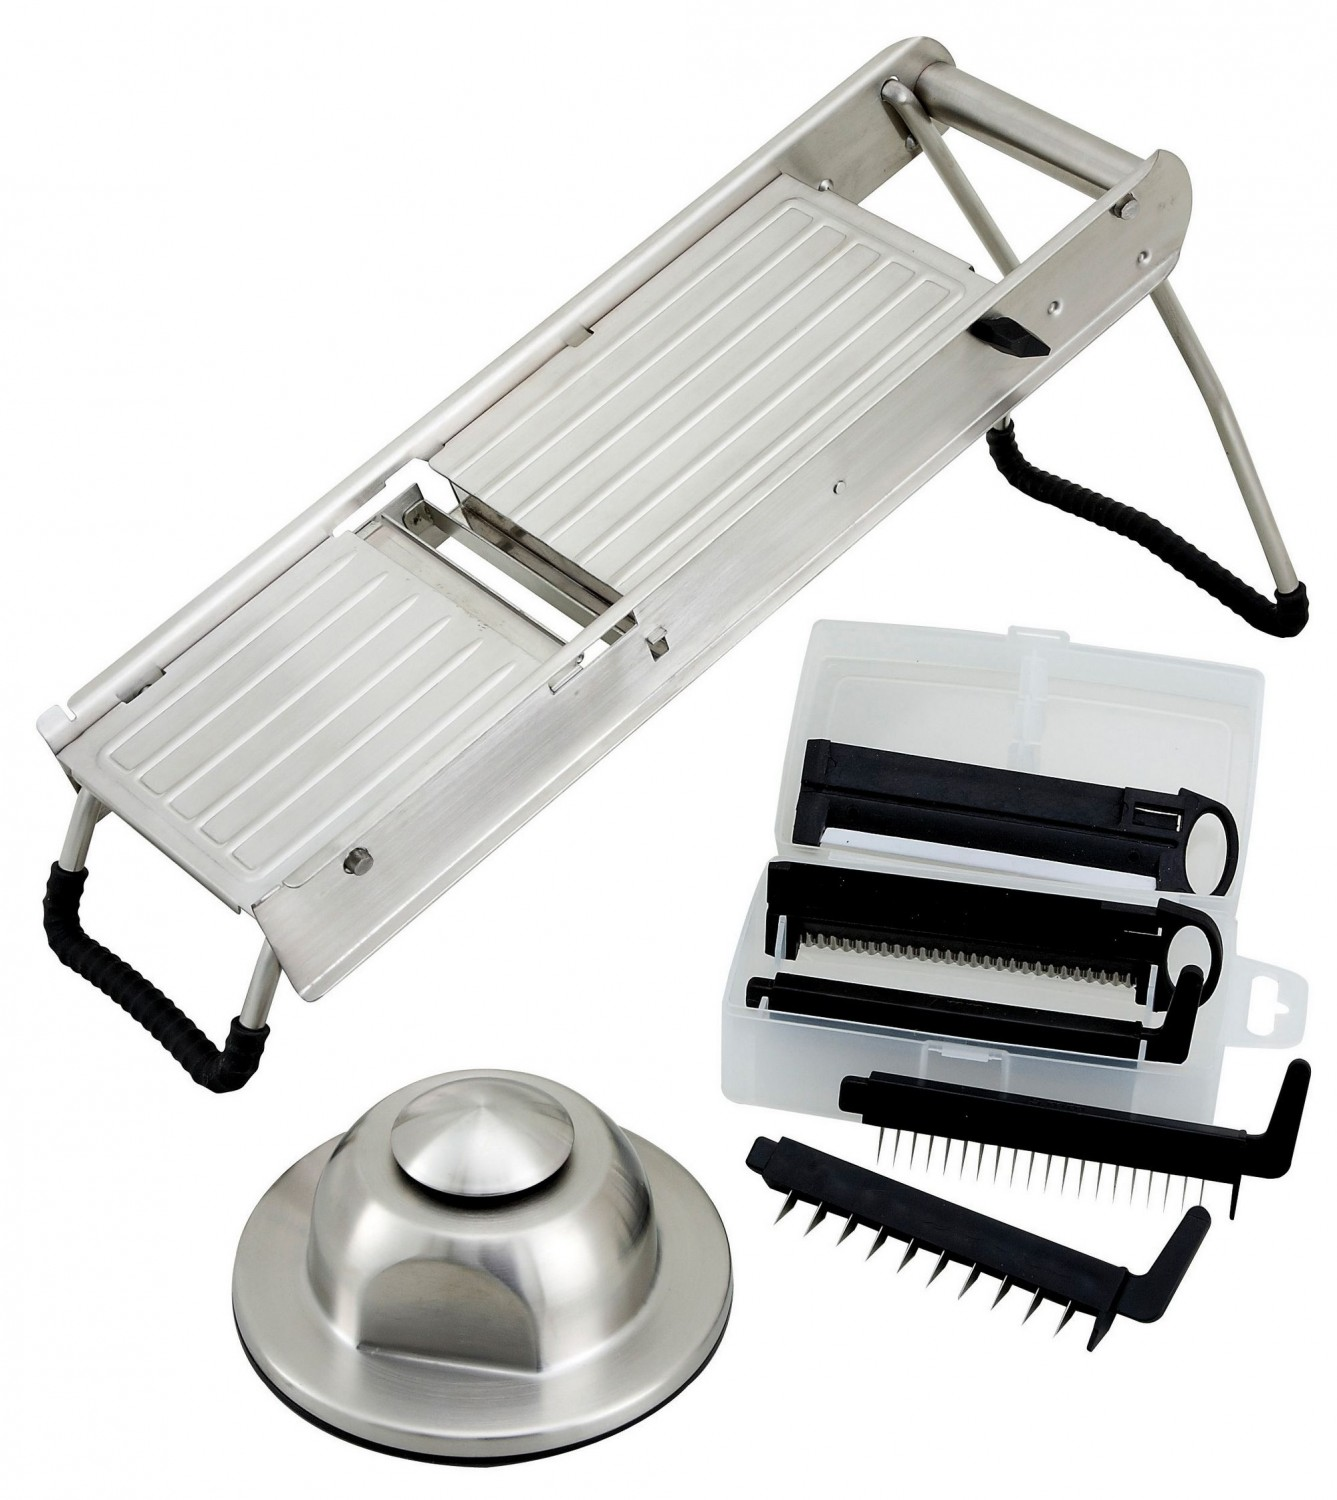 Winco MDL-15 Mandoline Slicer Set